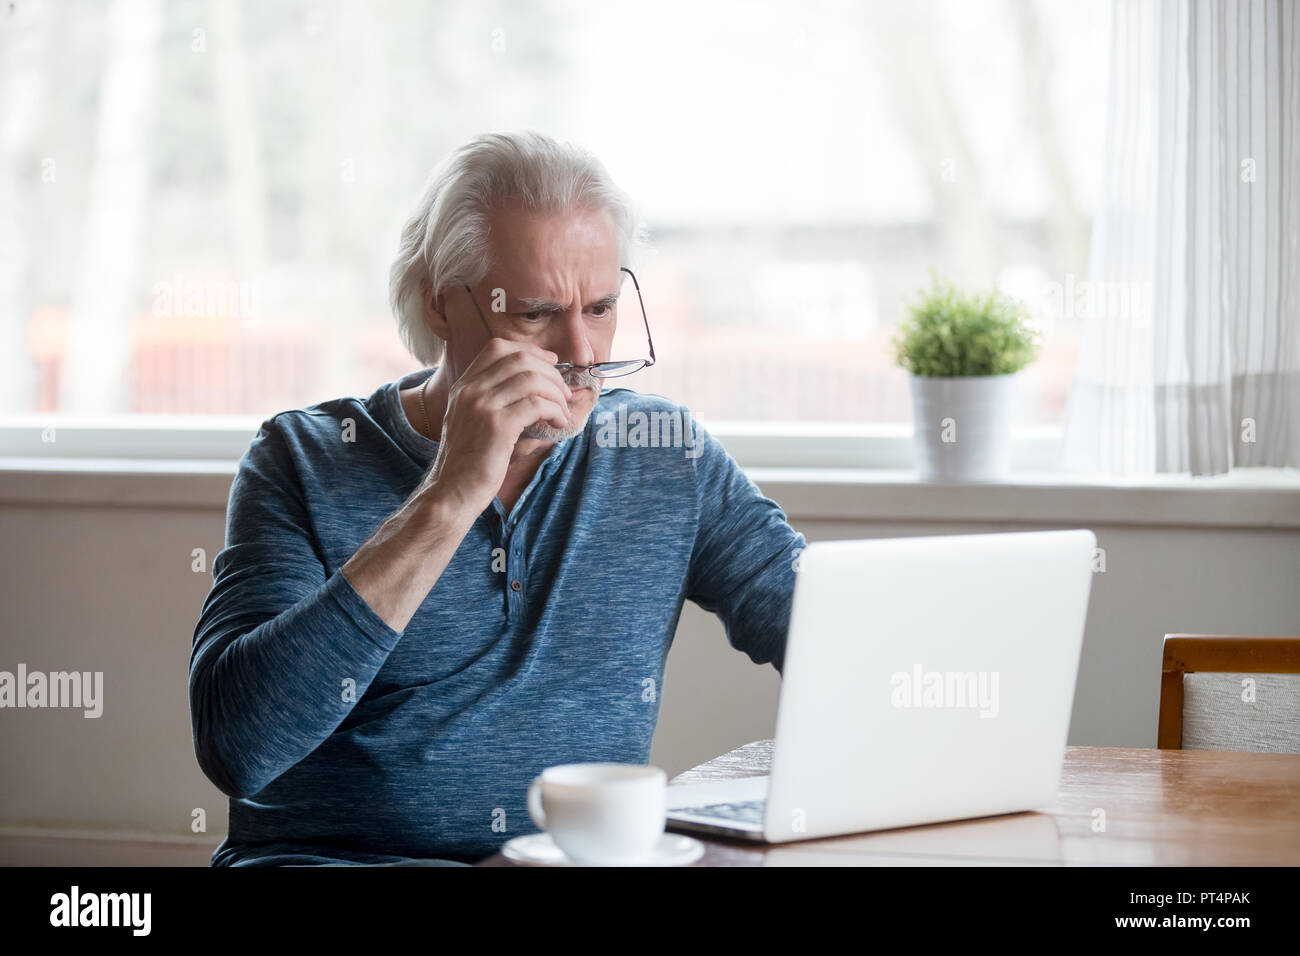 Shocked frustrated senior man taking off glasses looking at lapt - Stock Image